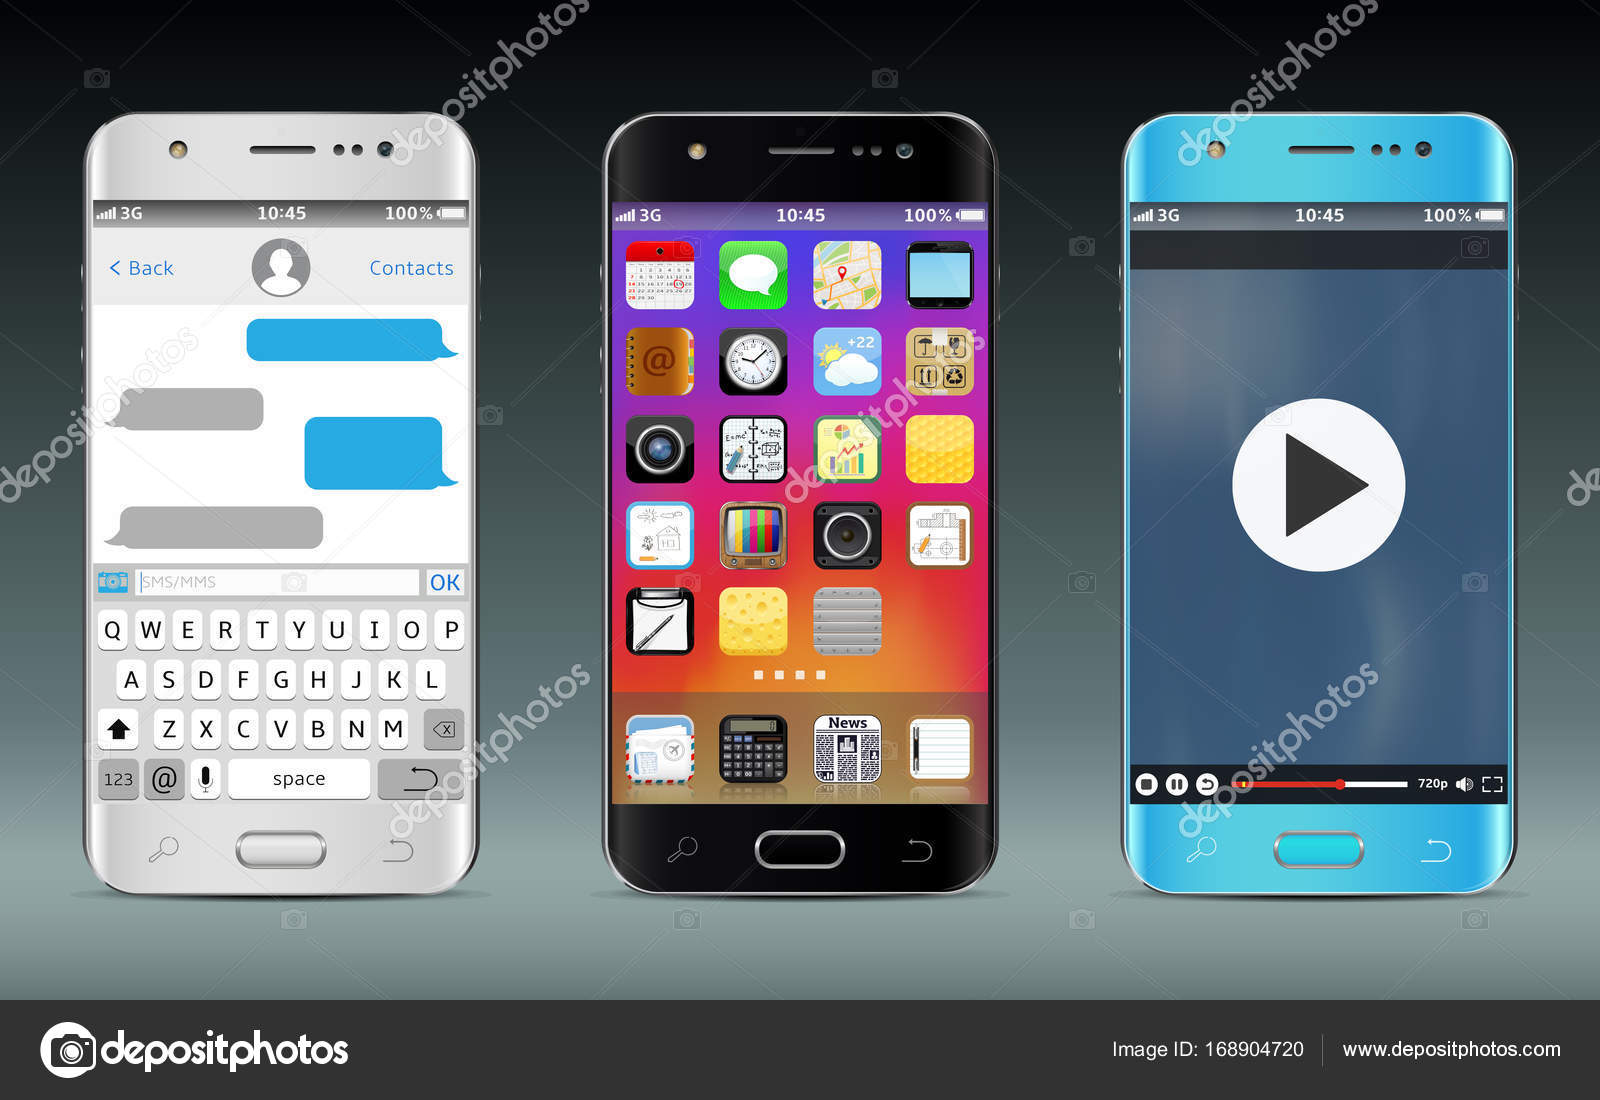 Smart phones with icons, messaging sms app and video player widget